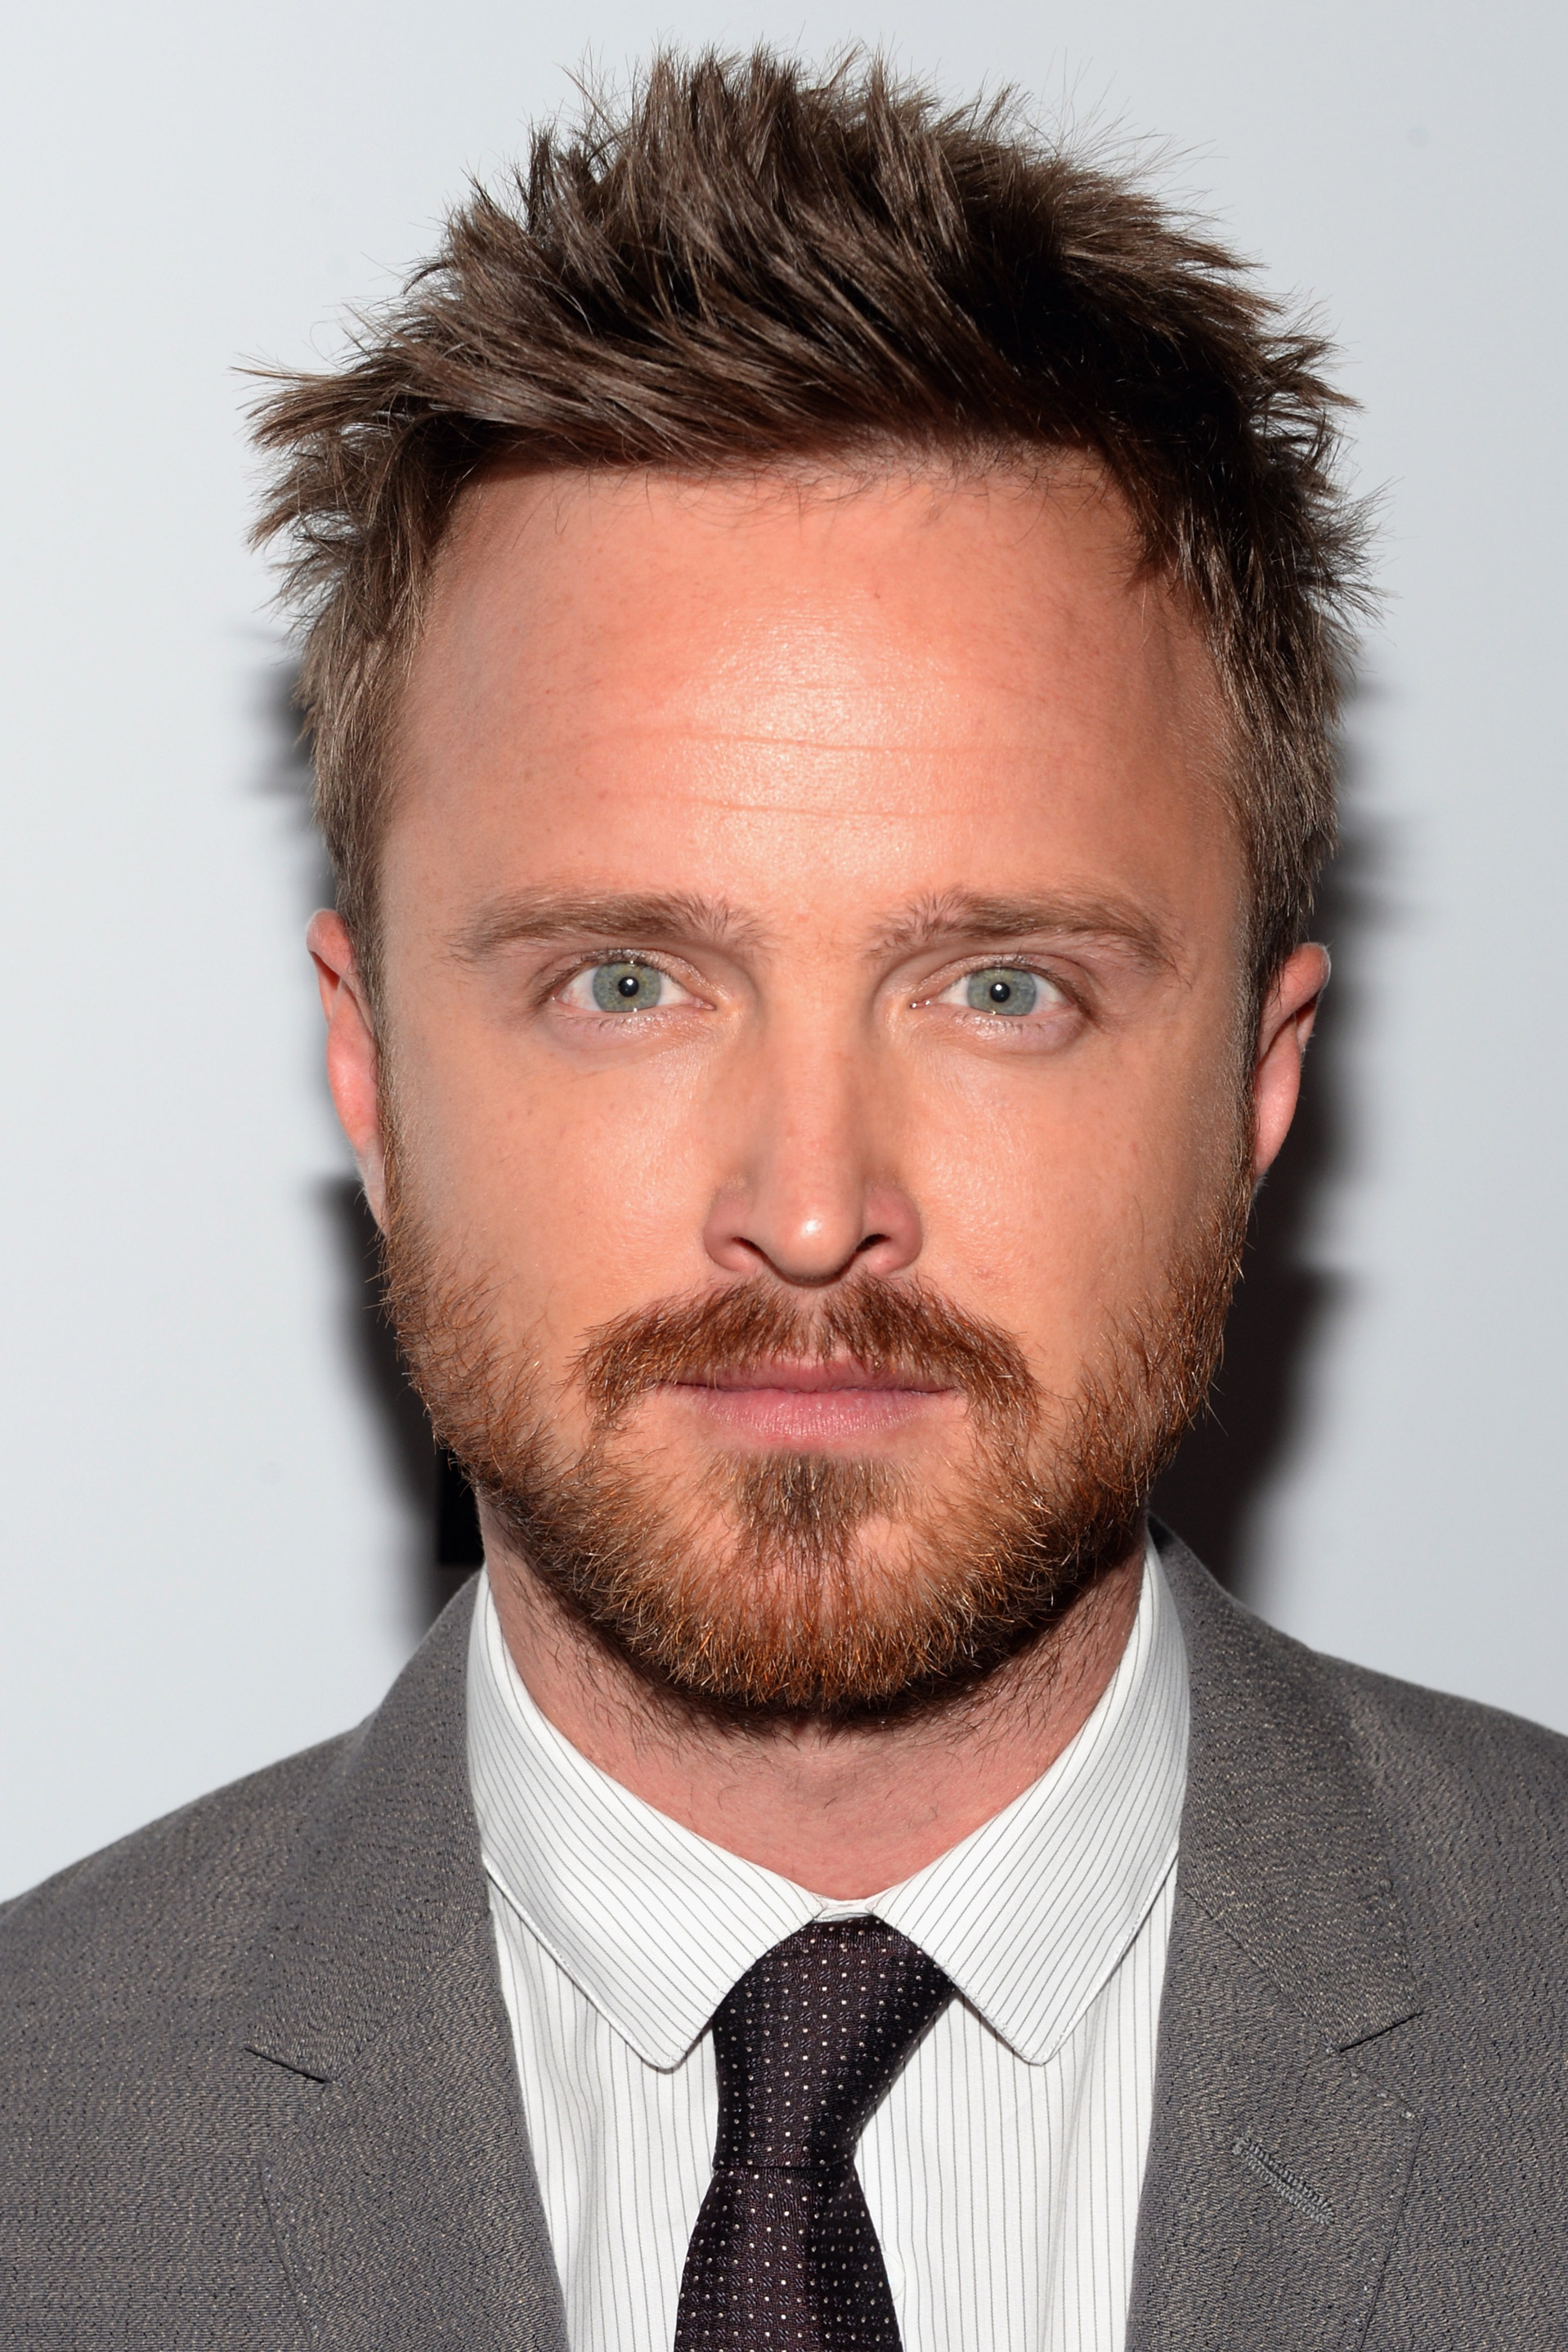 aaron paul фильмографияaaron paul wife, aaron paul height, aaron paul tumblr, aaron paul beach, aaron paul gif, aaron paul tattoo, aaron paul фильмография, aaron paul twitter, aaron paul need for speed, aaron paul poker, aaron paul vk, aaron paul and bryan cranston, aaron paul net worth, aaron paul the path, aaron paul perez, aaron paul wedding, aaron paul фильмы, aaron paul films, aaron paul png, aaron paul korn